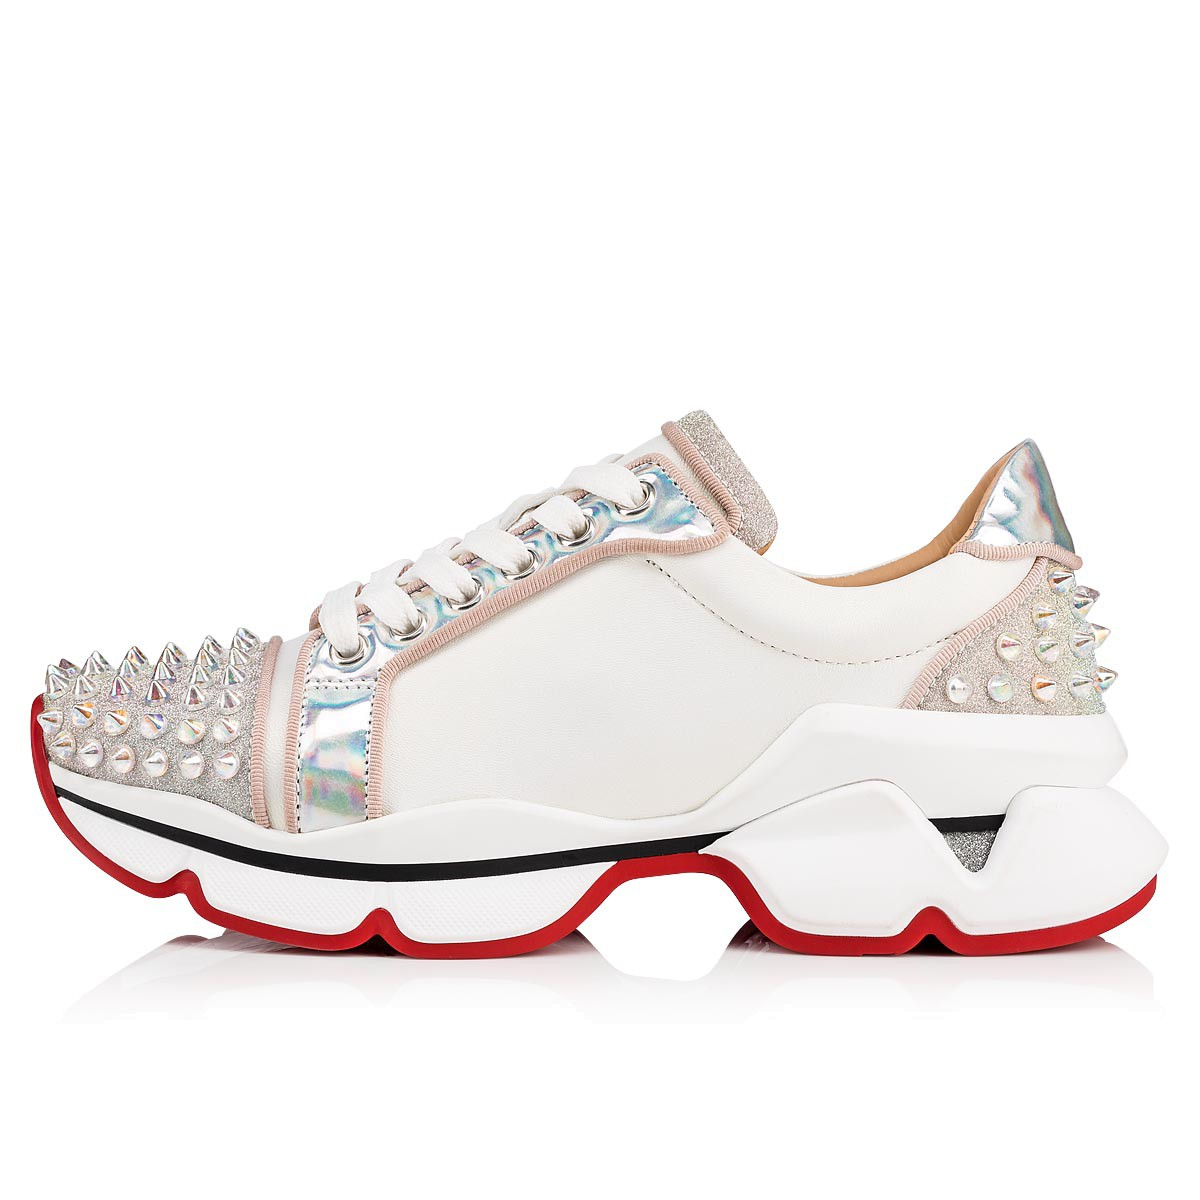 Women Shoes - Vrs 2018 Orlato - Christian Louboutin